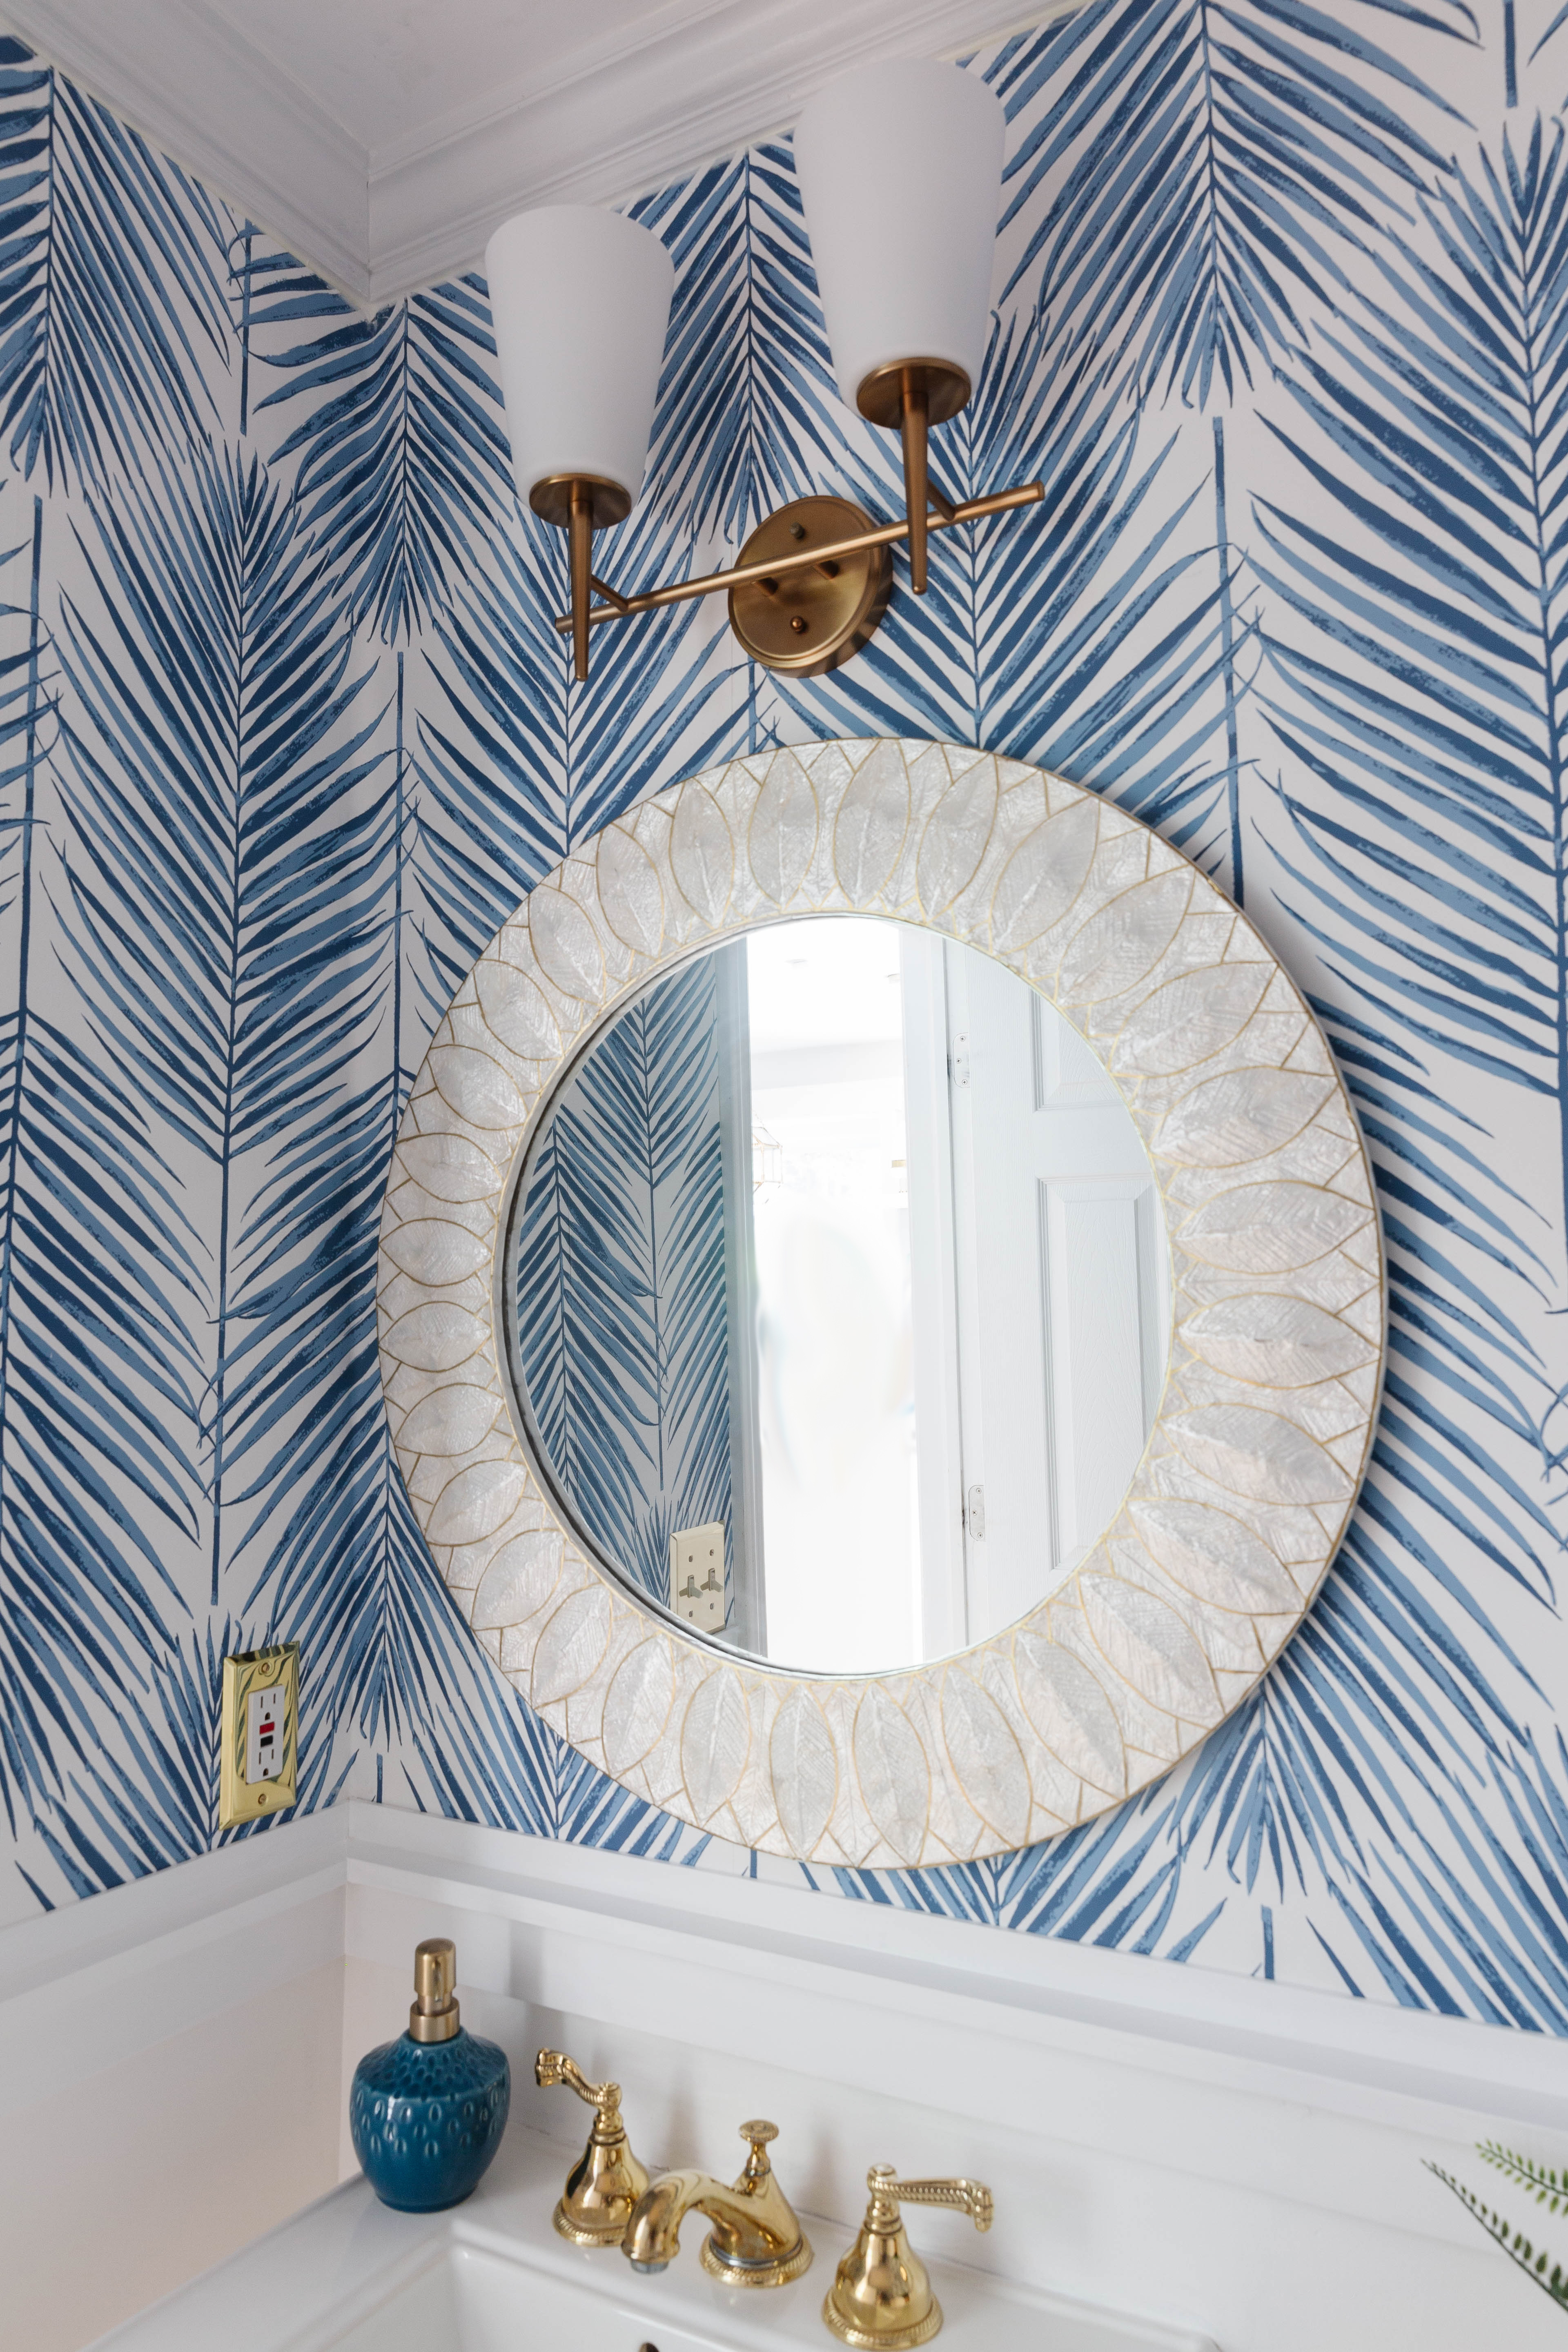 Here is our blue and white coastal powder room! I am so, so happy with how it turned out. The first few days, I kept walking by and staring at it. LOL! I guess that's what happens when you put in the hard work and effort of doing all of the work yourself!